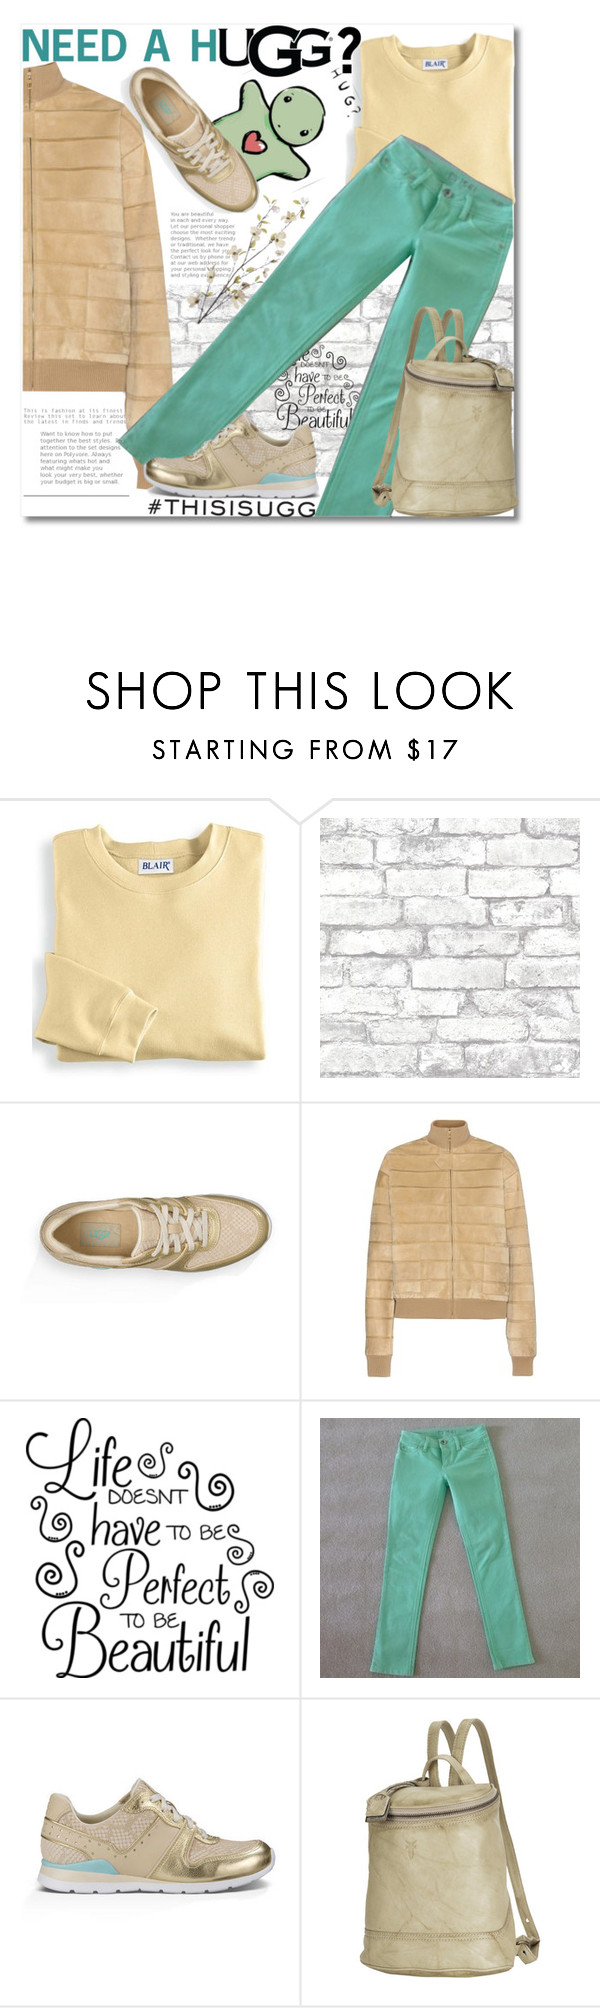 """""""Play With Prints In UGG: Contest Entry"""" by andrea2andare ❤ liked on Polyvore featuring UGG, Blair, UGG Australia, Brewster Home Fashions, Loewe, DL1961 Premium Denim, Frye, Pier 1 Imports and thisisugg"""